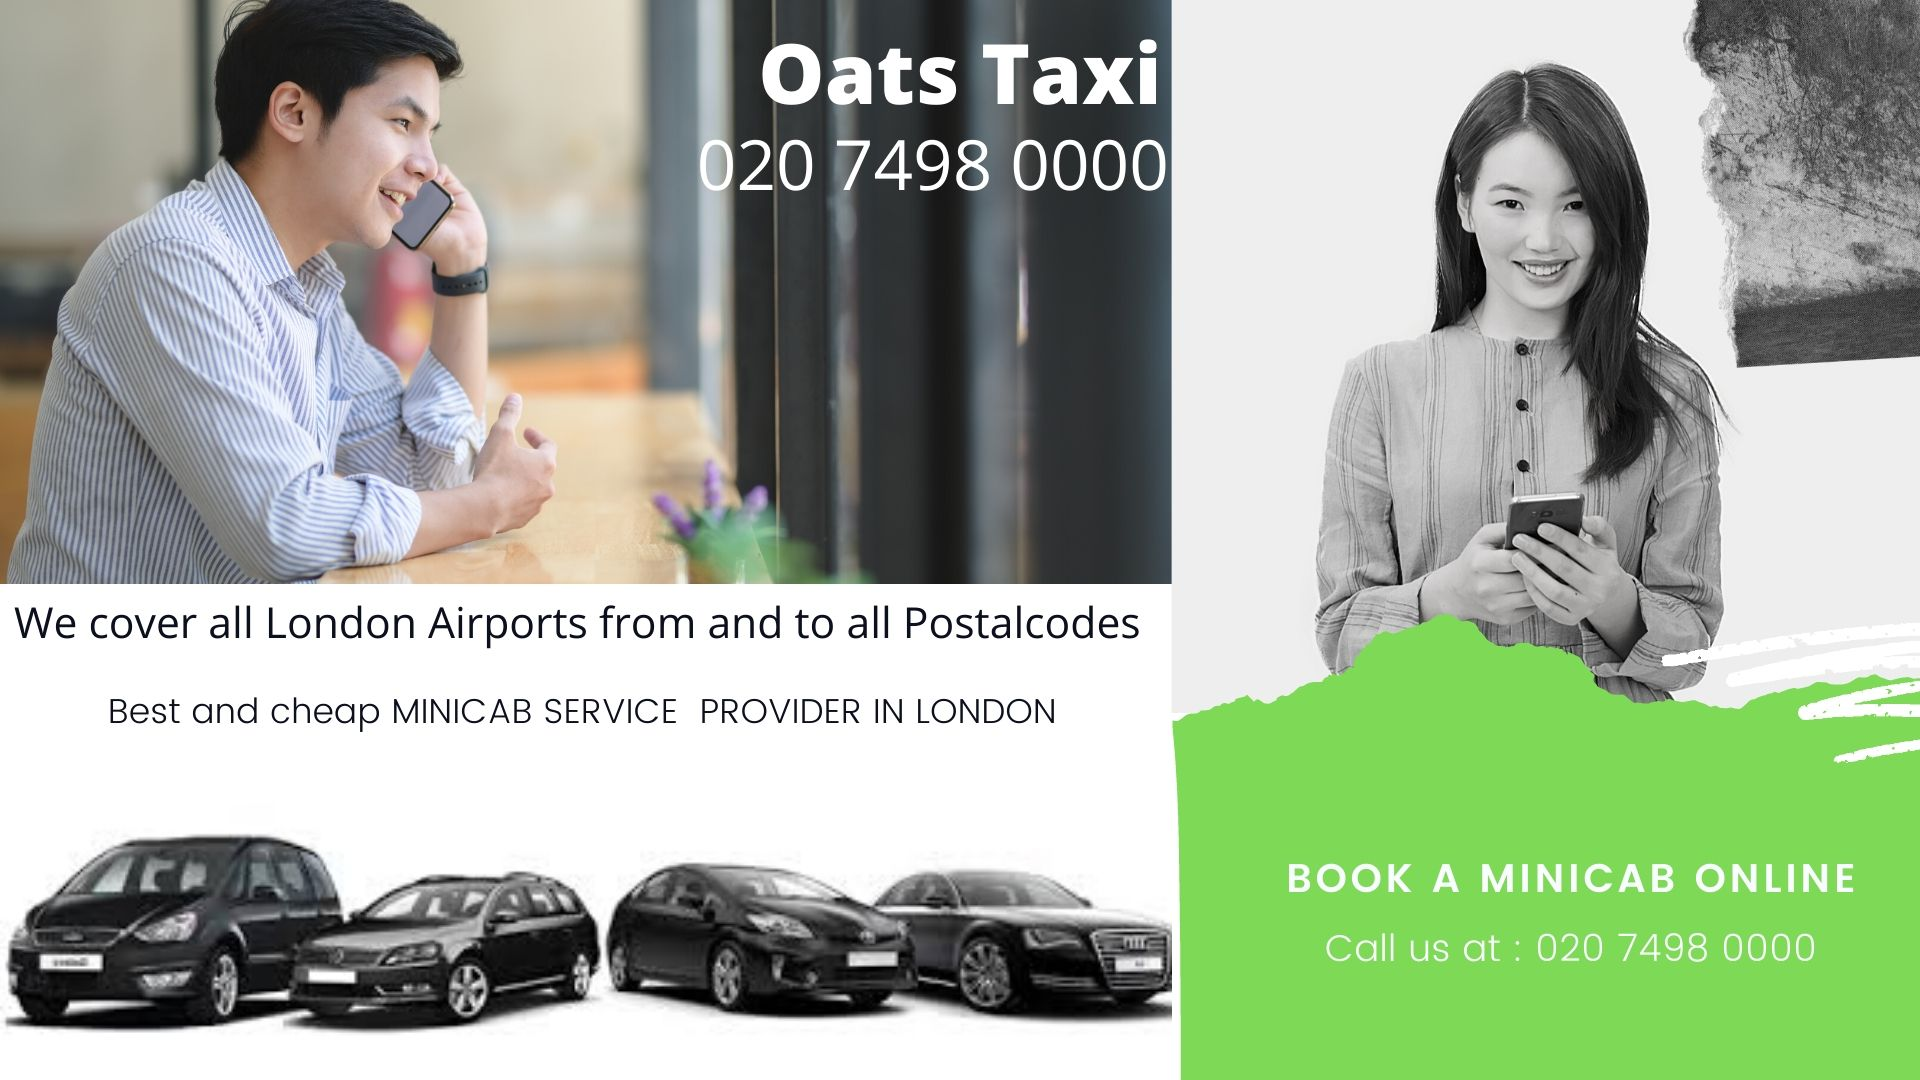 Nearest Taxi Office in South Norwood | Gatwick Airport | Call now : 02074980000